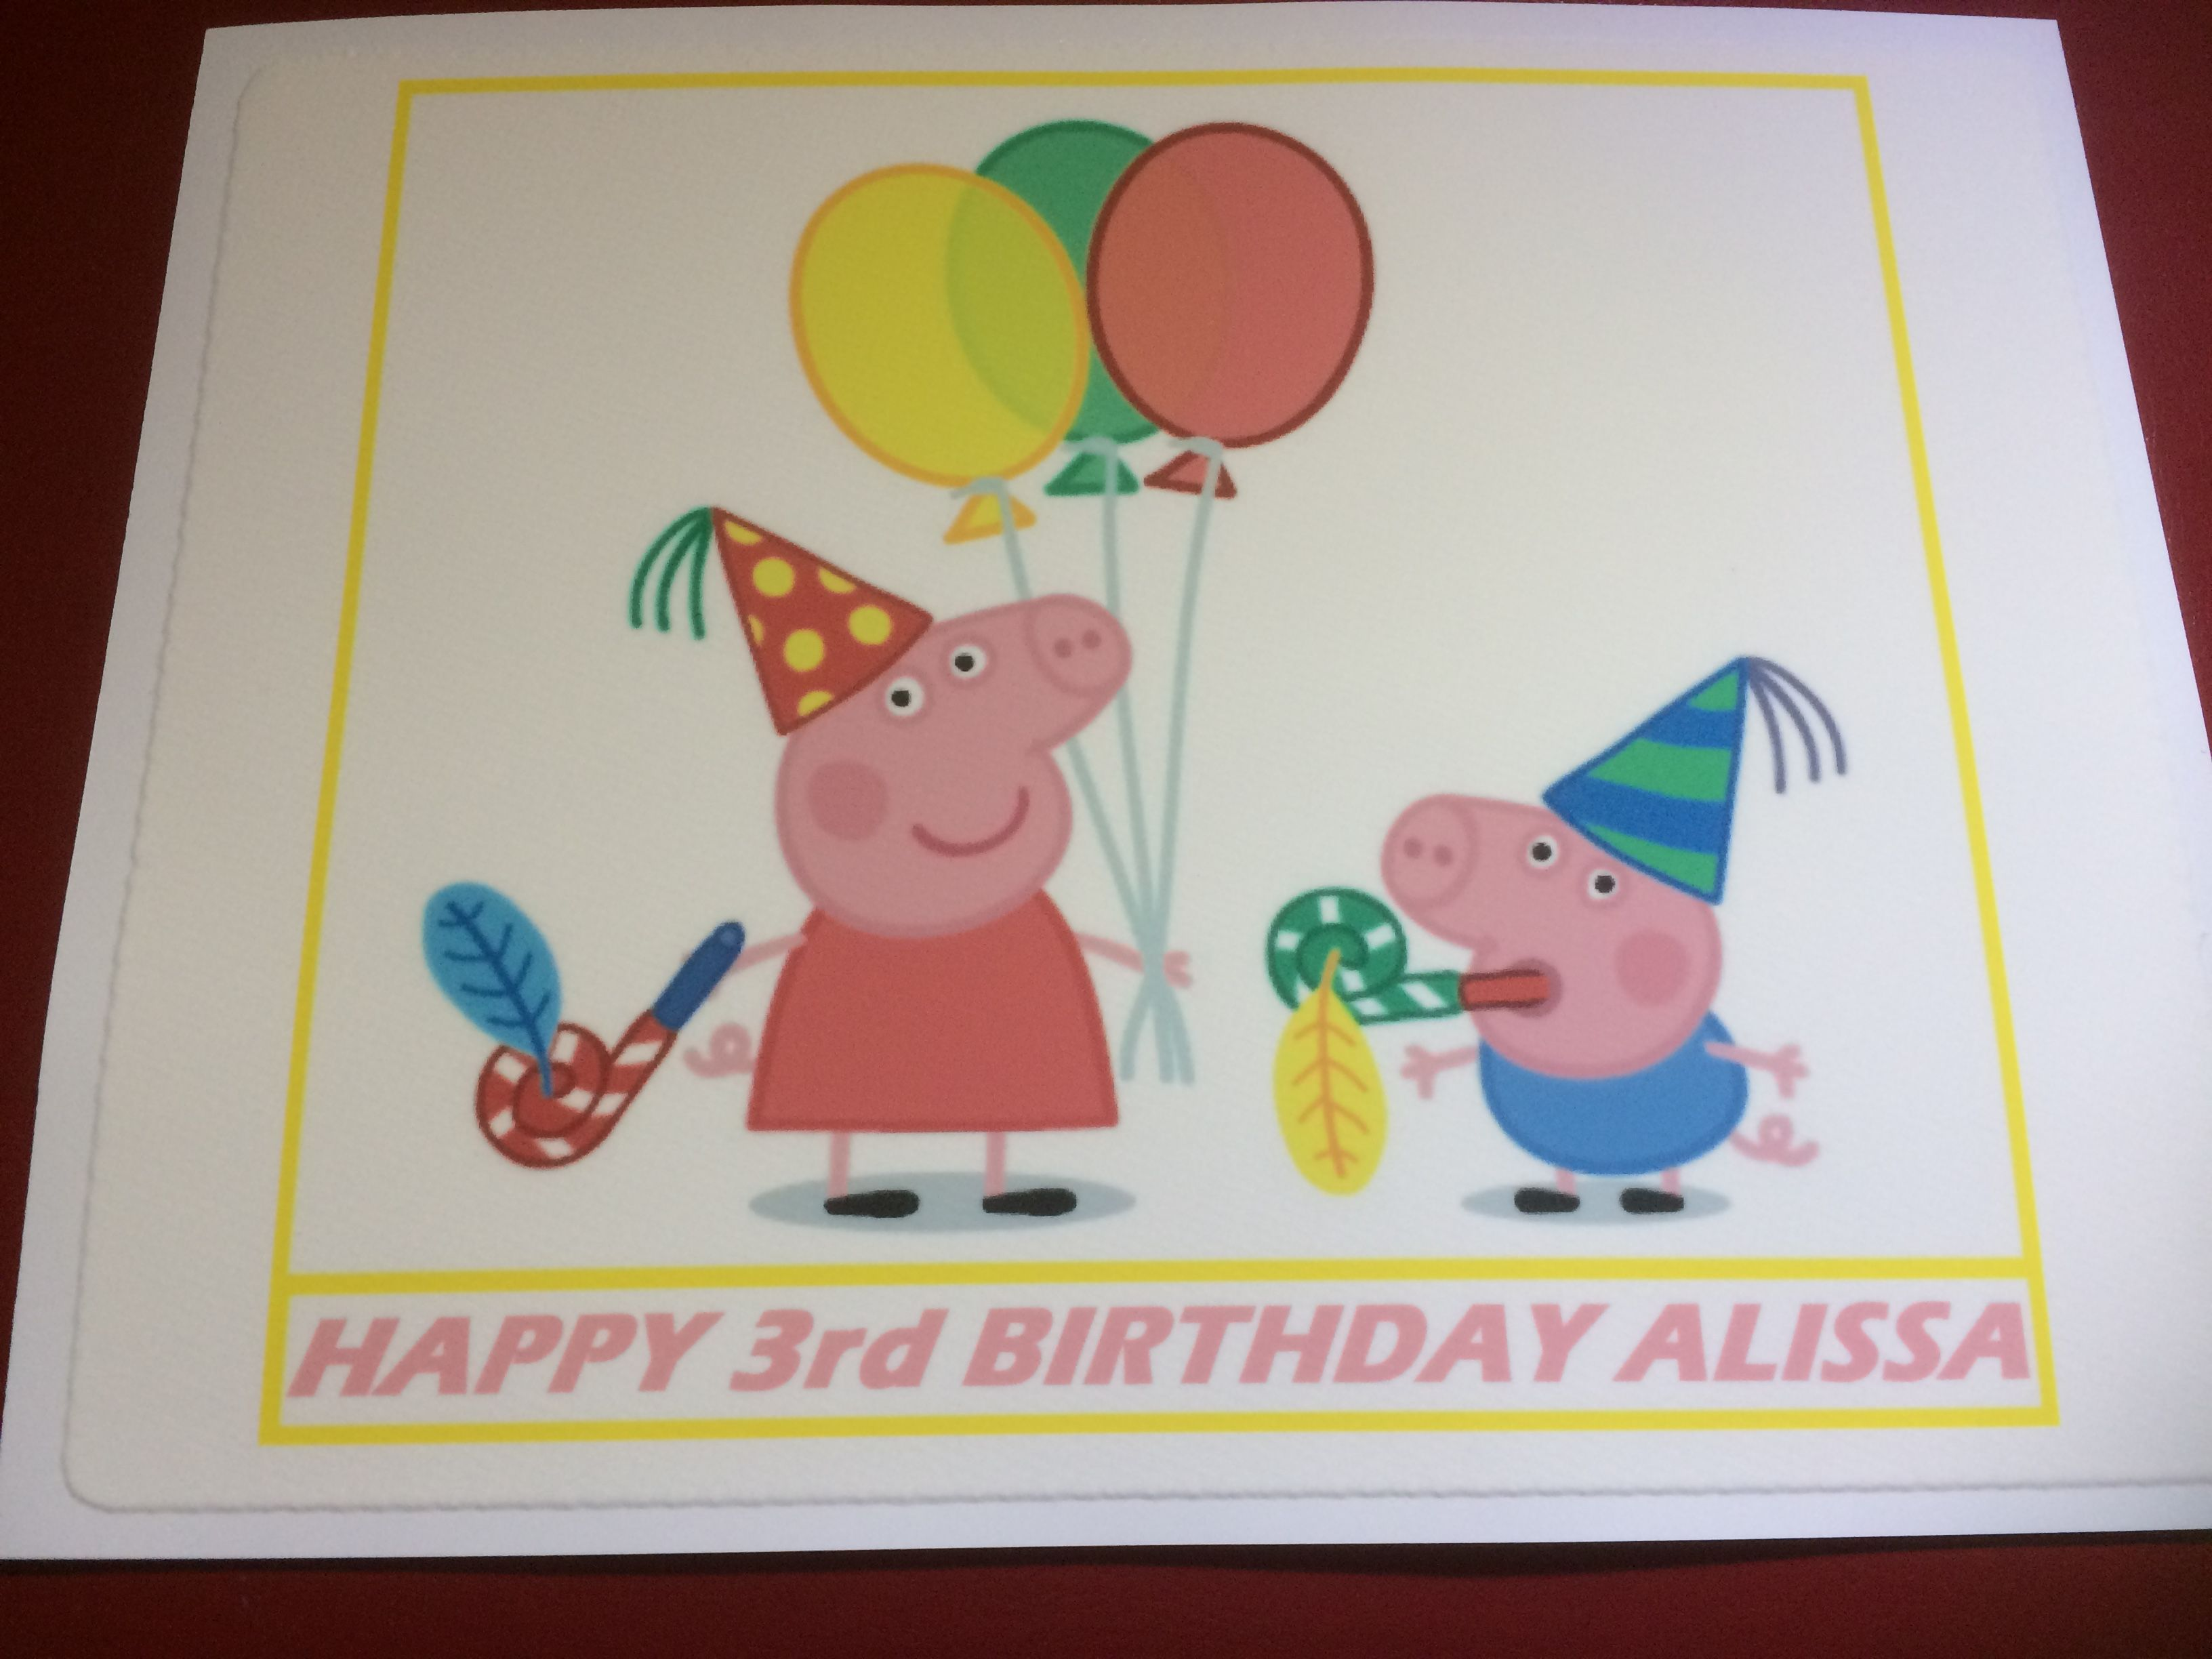 Just completed this peppa pig edible cake topper for a